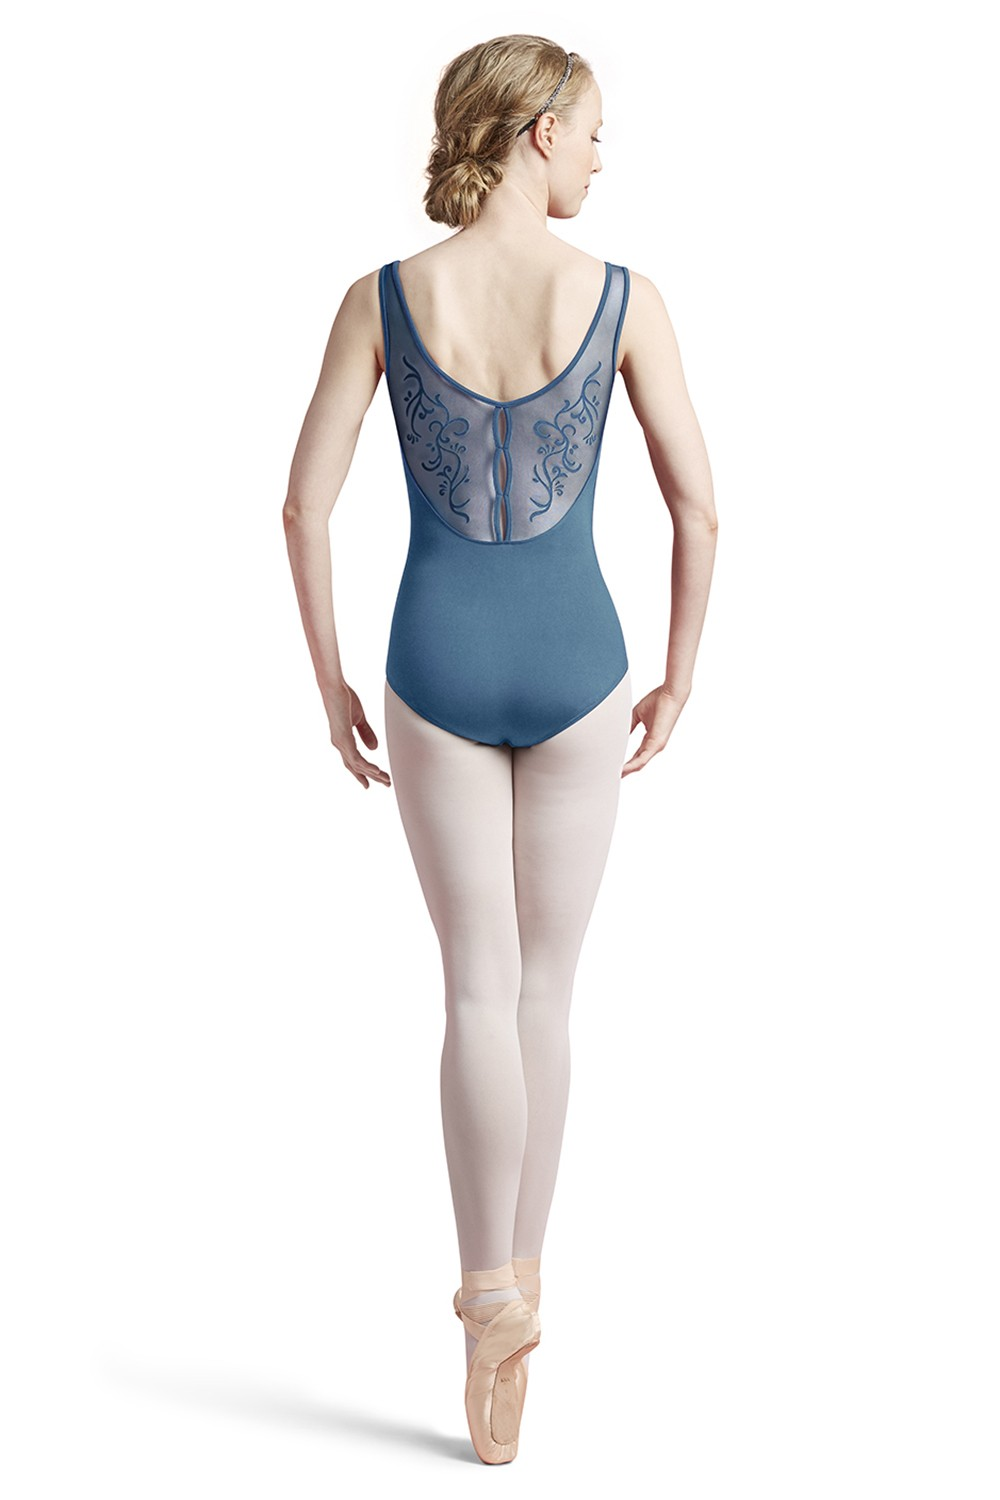 Pascual Women's Dance Leotards